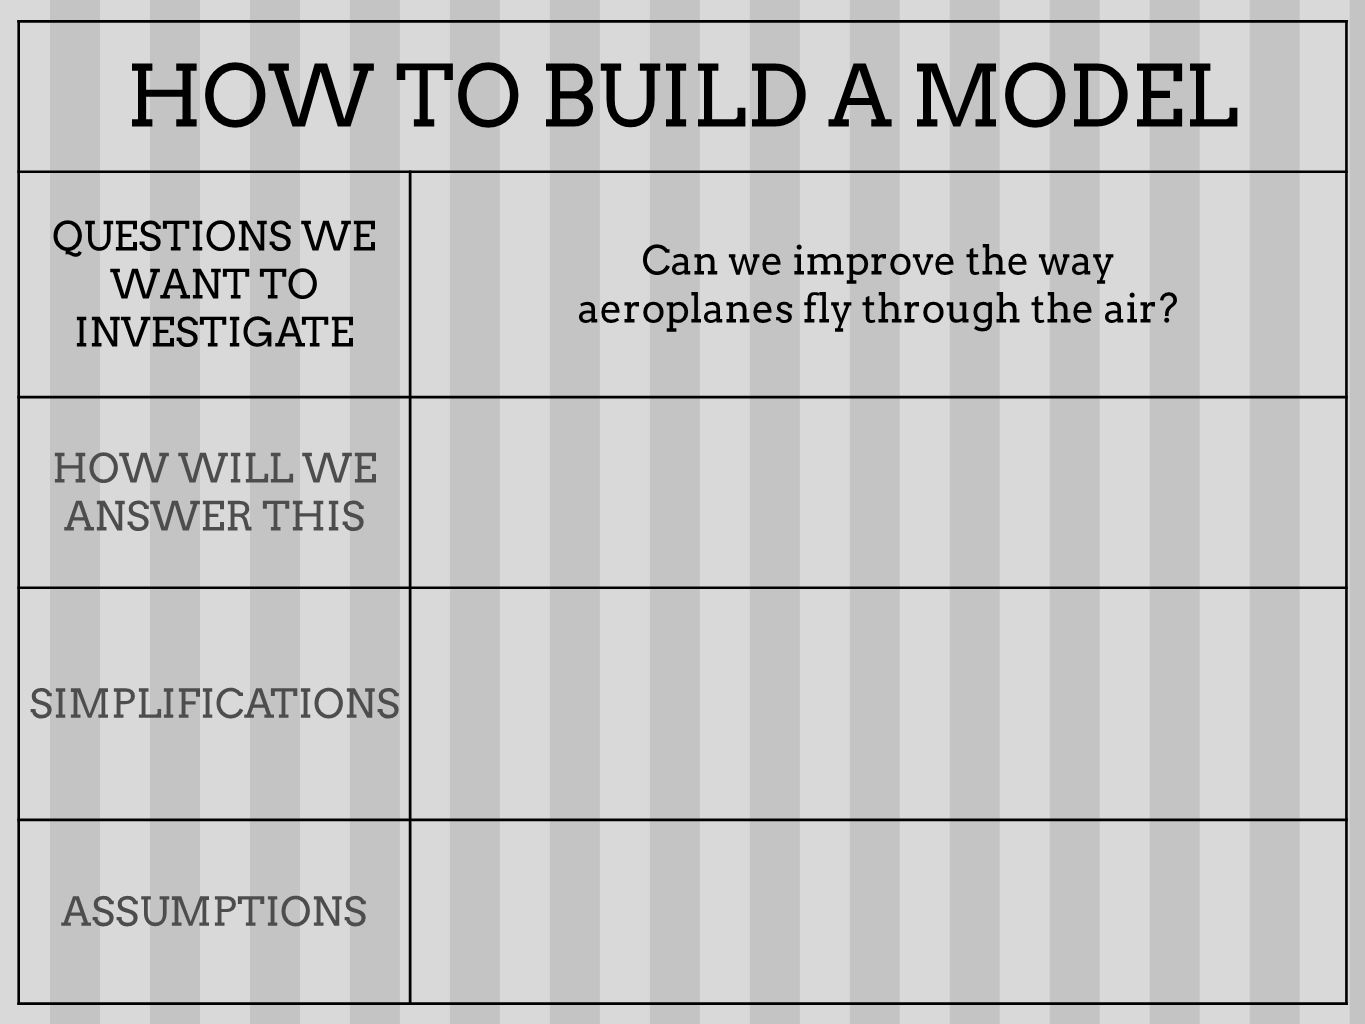 HOW TO BUILD A MODEL QUESTIONS WE WANT TO INVESTIGATE Can we improve the way aeroplanes fly through the air? HOW WILL WE ANSWER THIS SIMPLIFICATIONS A